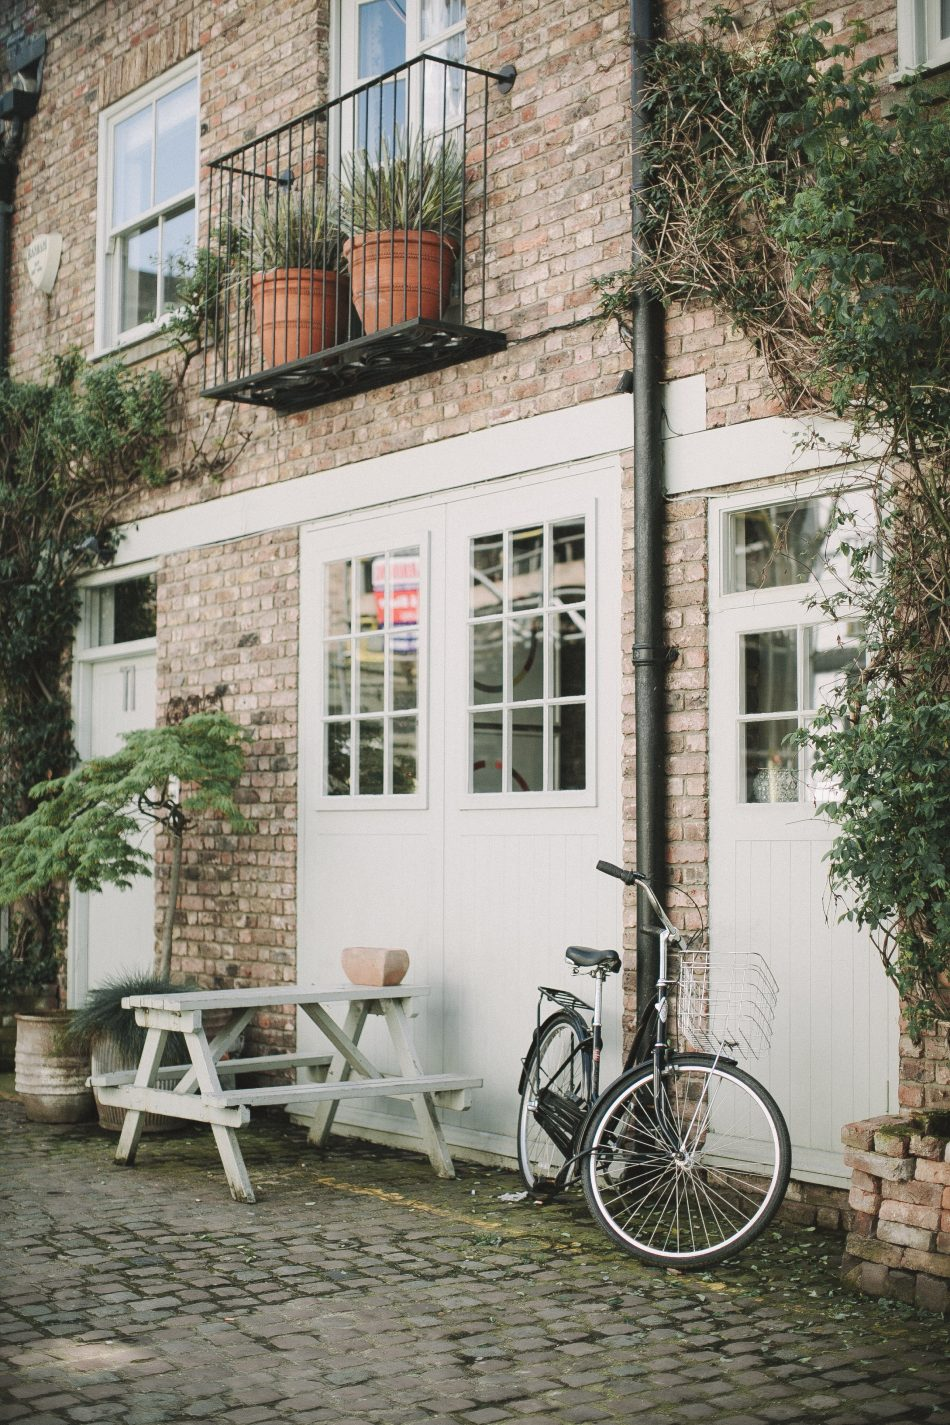 Aspiring property hosts must check the small print image